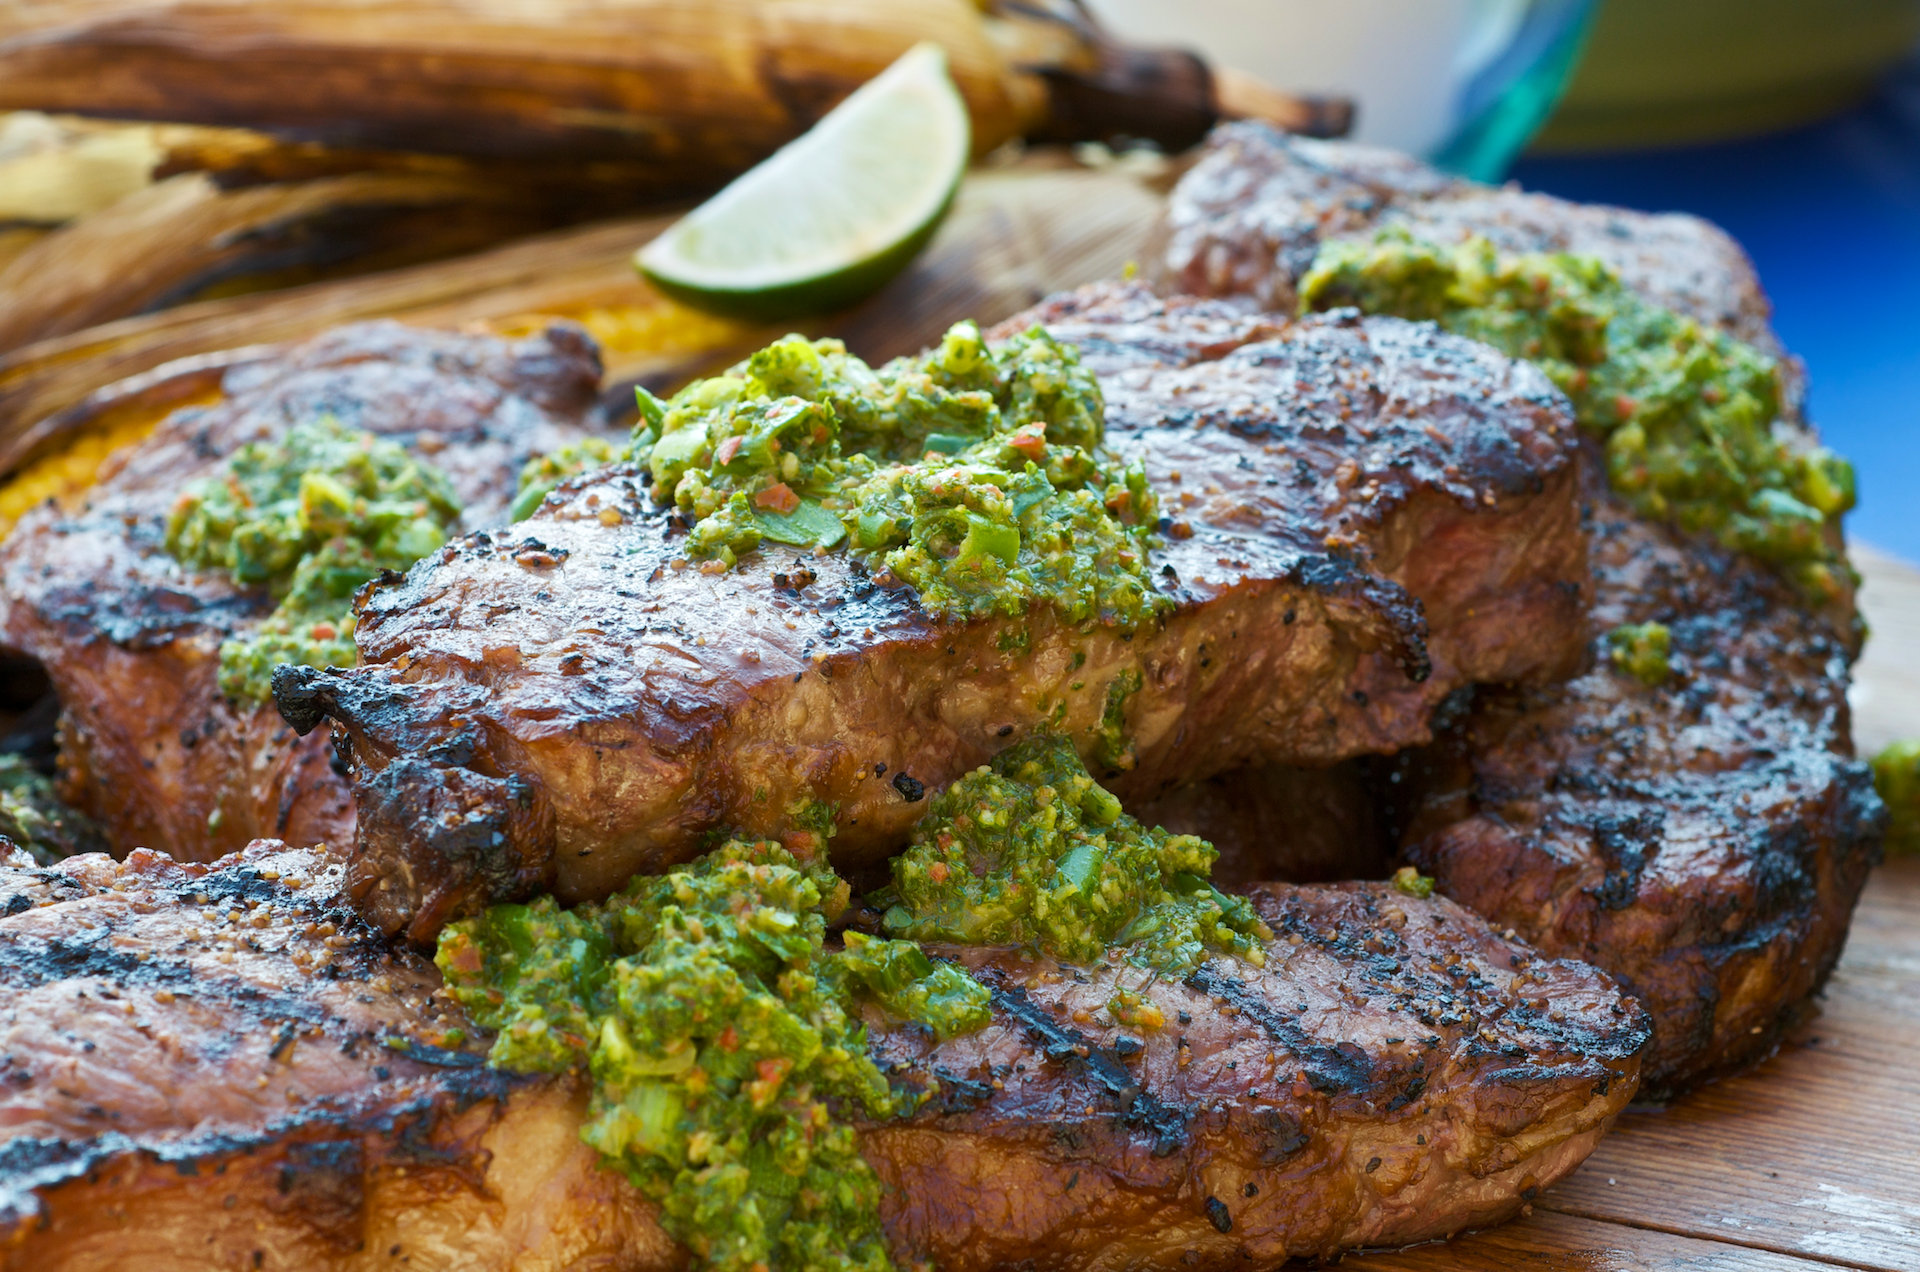 A bright green sauce of herbs, garlic, and limes, with origins in Argentina.